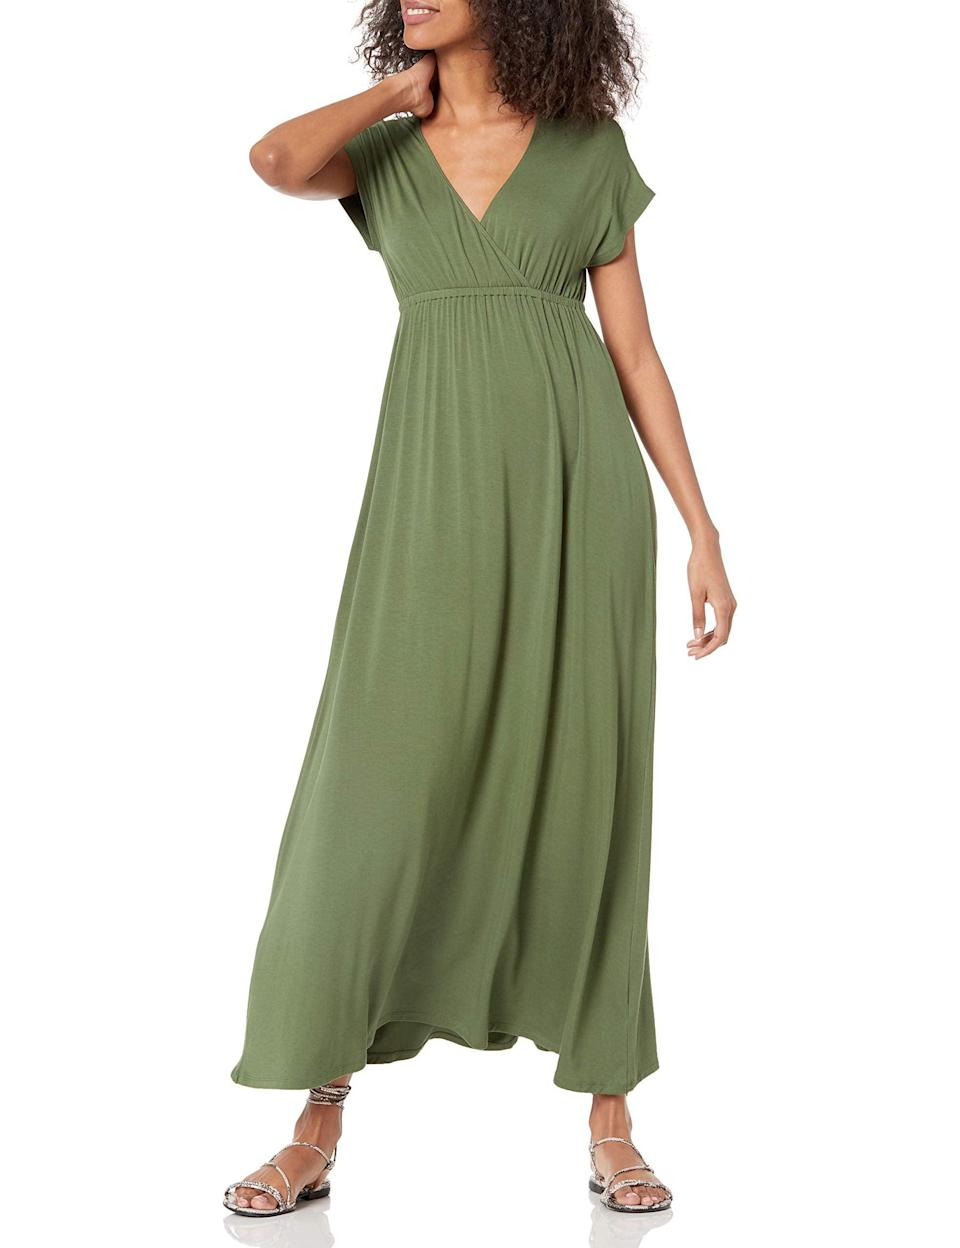 """<h2>Amazon Essentials Surplice Maxi Dress<br></h2><br><strong><em>The ... Well, The Essential</em></strong><br><br>While this ultra-simple dress isn't winning any design awards, it is winning rave reviews from over a thousand highly satisfied customers. Reviewers say it's the type of frock that can be transformed into almost any look with the right accessories, and wears with the utmost elegance and ease.<br><br><strong>The Hype: </strong>4.5 out of 5 stars; 1,223 reviews on Amazon.com<br><br><strong>What They're Saying: </strong>""""This dress is everything I wanted and nothing I don't. Simple, drapes well. The material is your standard summer maxi stretchy matte cotton. The v isn't so deep that you need a cami to cover cleavage at work. The sleeves are long enough to not be sleeveless but close enough to be cool. The arm holes are blessedly normal-sized and not gaping. I'm a 40"""" bust and 16 - 18 in clothes, and the XL fits me really well. The top might be a tad loose, the L would probably fit as well, but I like it, it's comfortable. Might buy a few more in other colors!"""" — edoug, Amazon.com reviewer<br><br><strong>Amazon Essentials</strong> Surplice Maxi Dress, $, available at <a href=""""https://www.amazon.com/gp/product/B08JH4ZH69?"""" rel=""""nofollow noopener"""" target=""""_blank"""" data-ylk=""""slk:Amazon"""" class=""""link rapid-noclick-resp"""">Amazon</a>"""